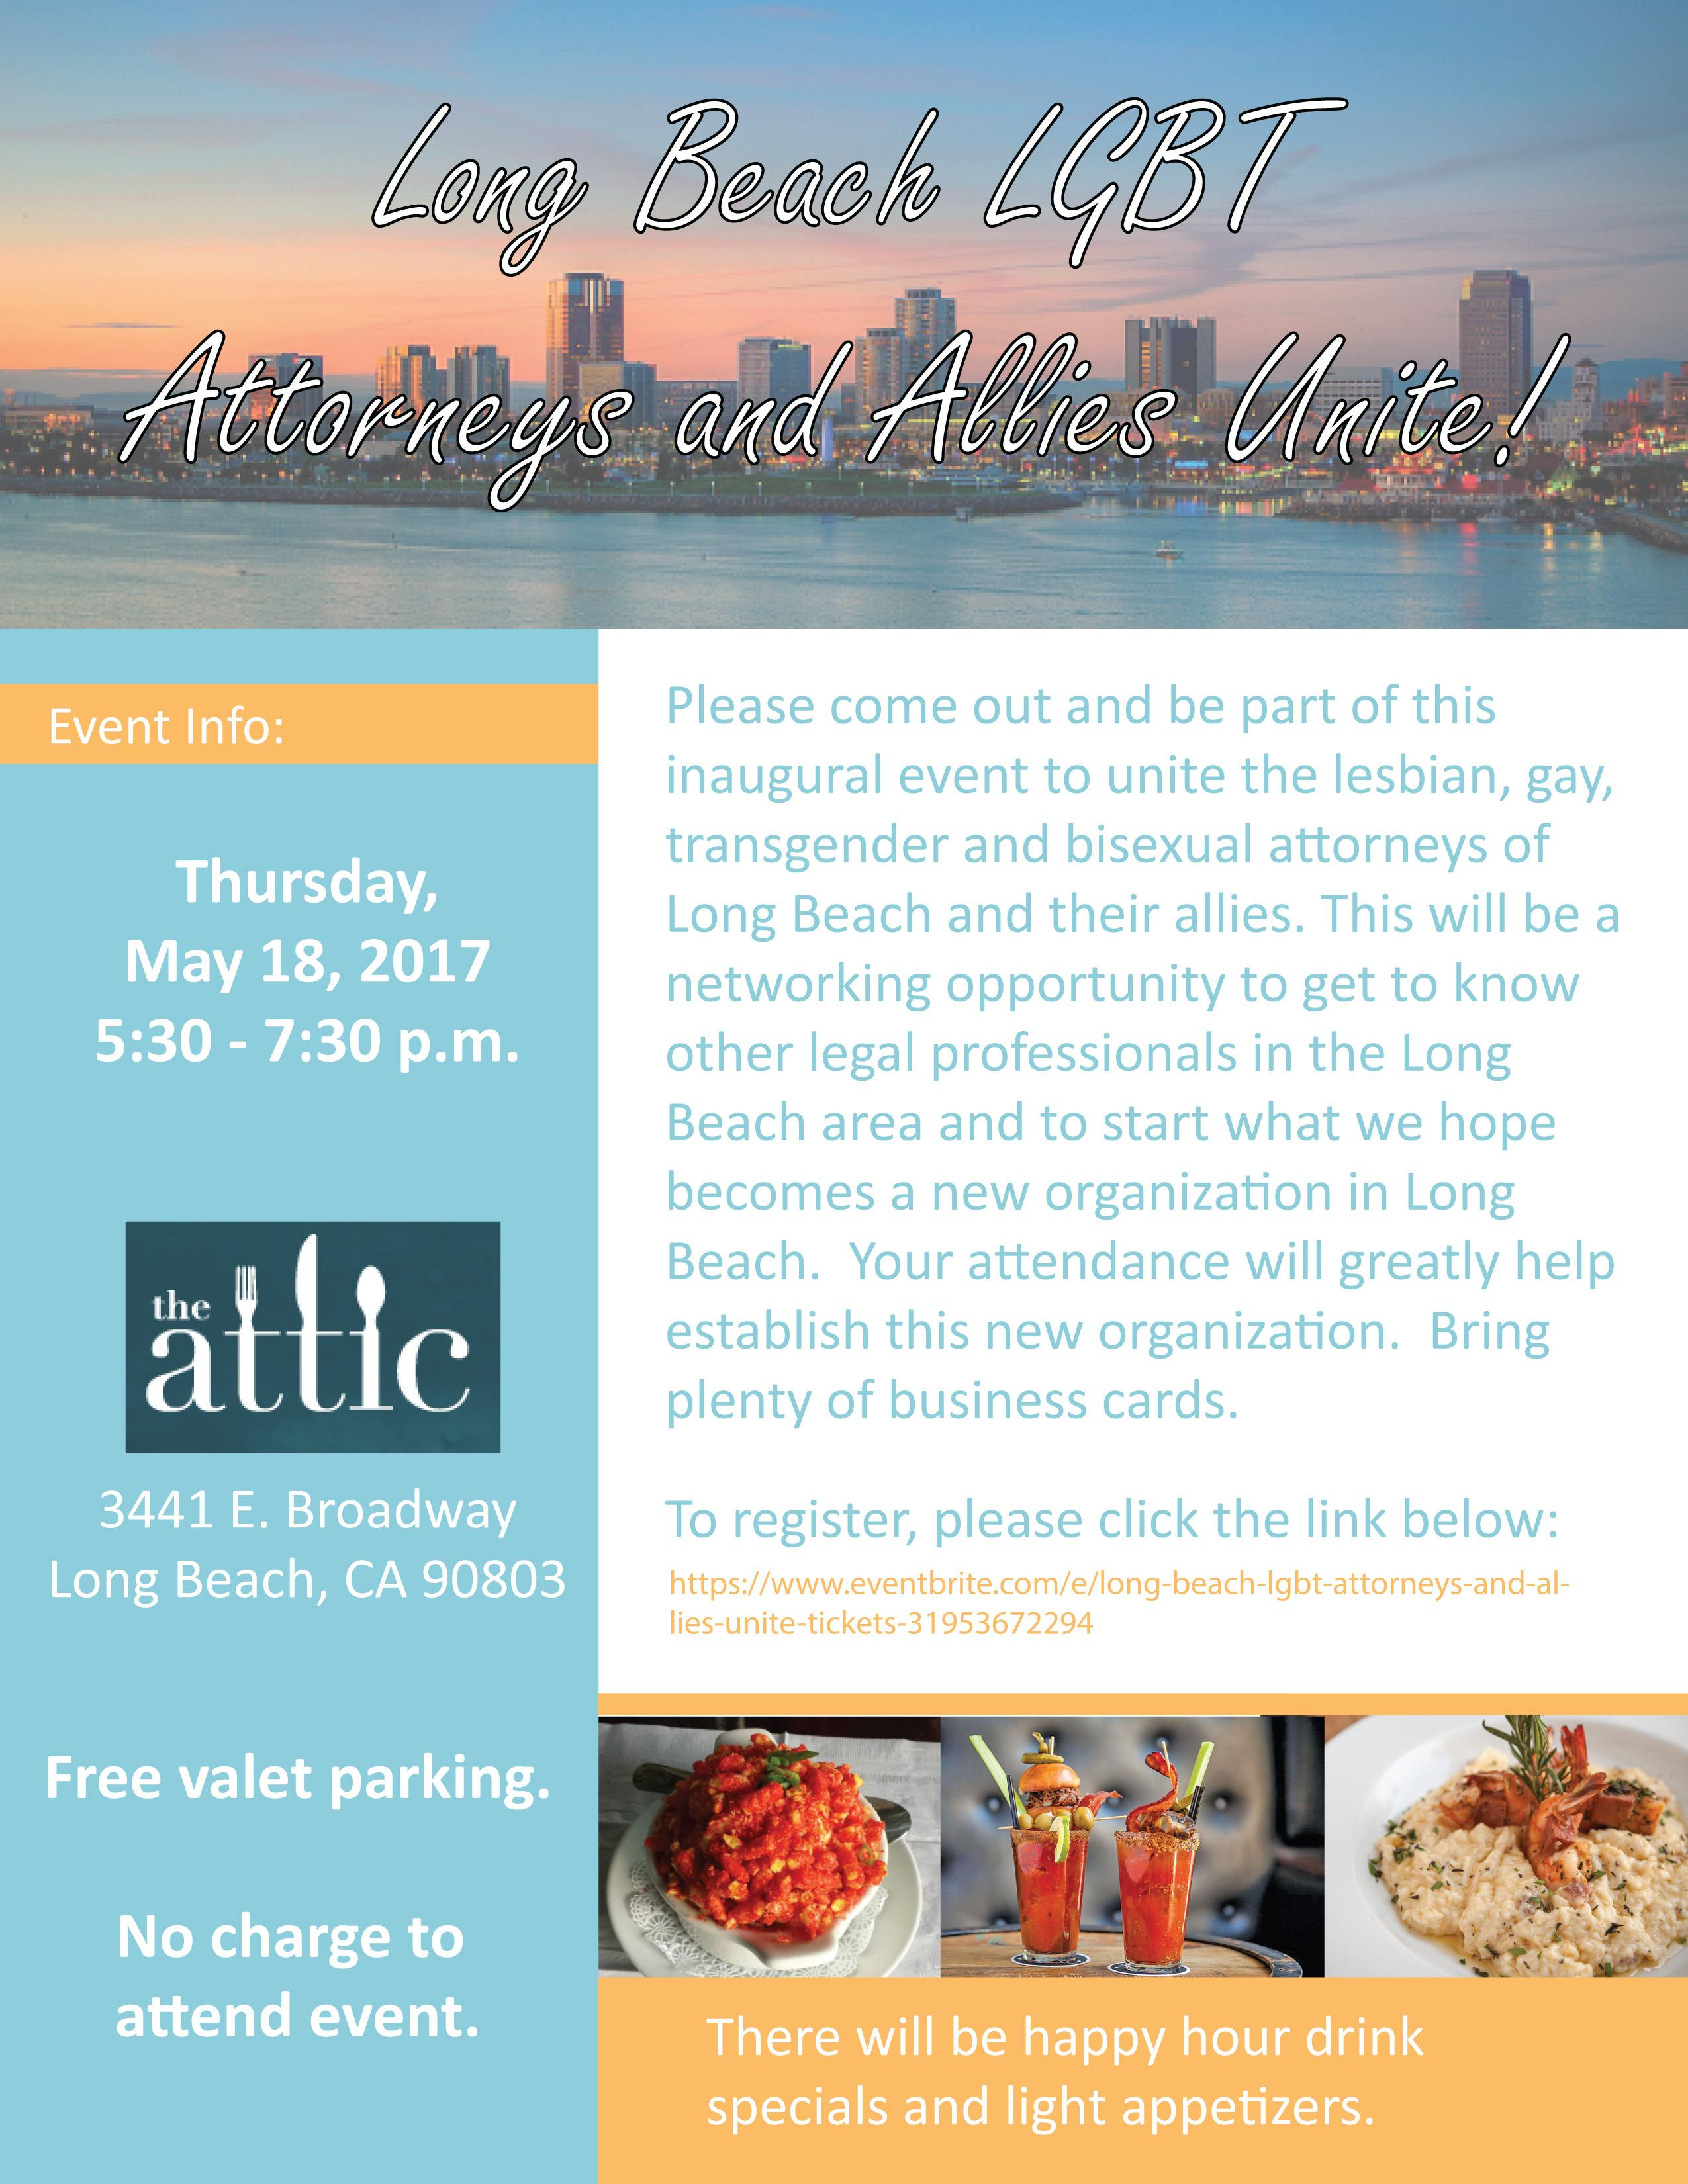 long beach lgbt attorneys and allies unite the attic on